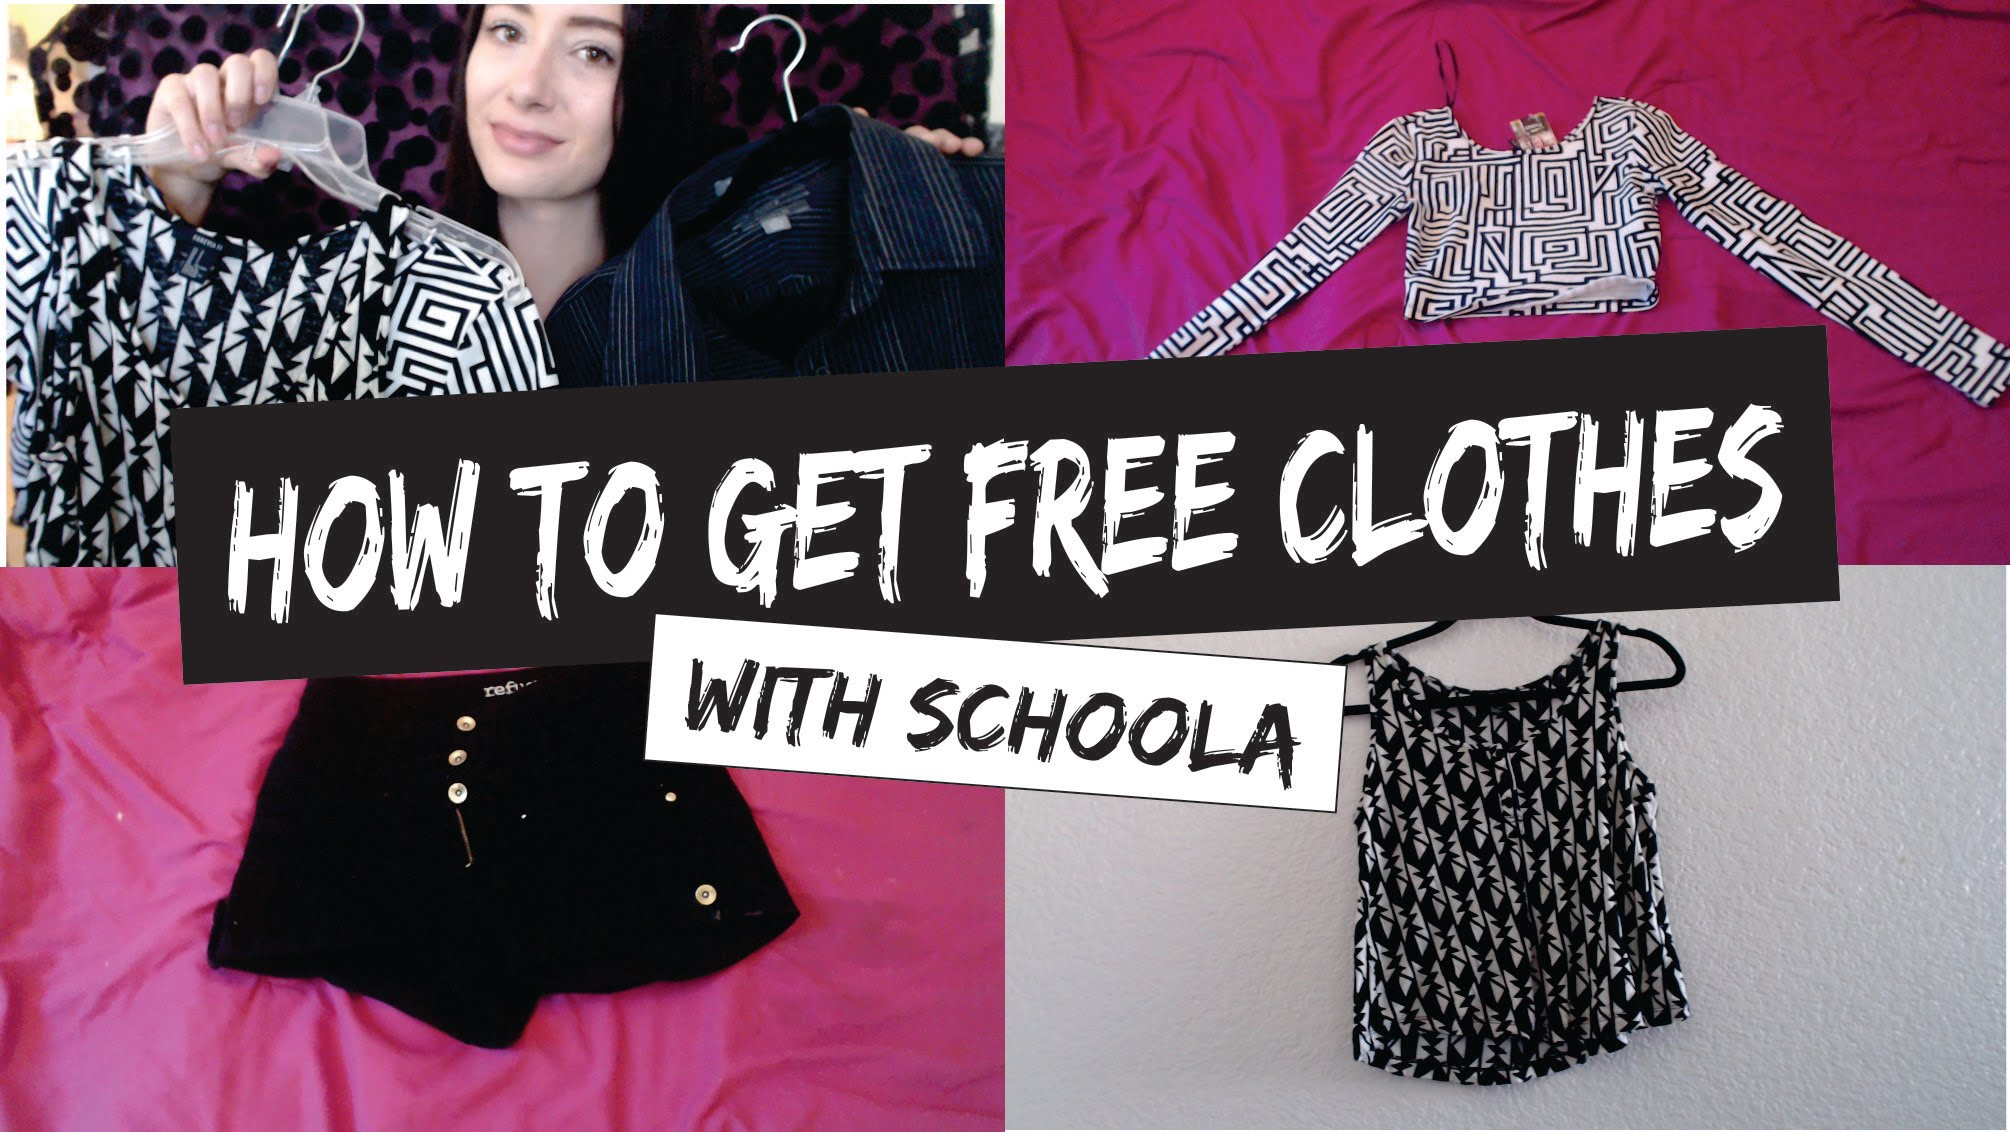 How can i get free clothes